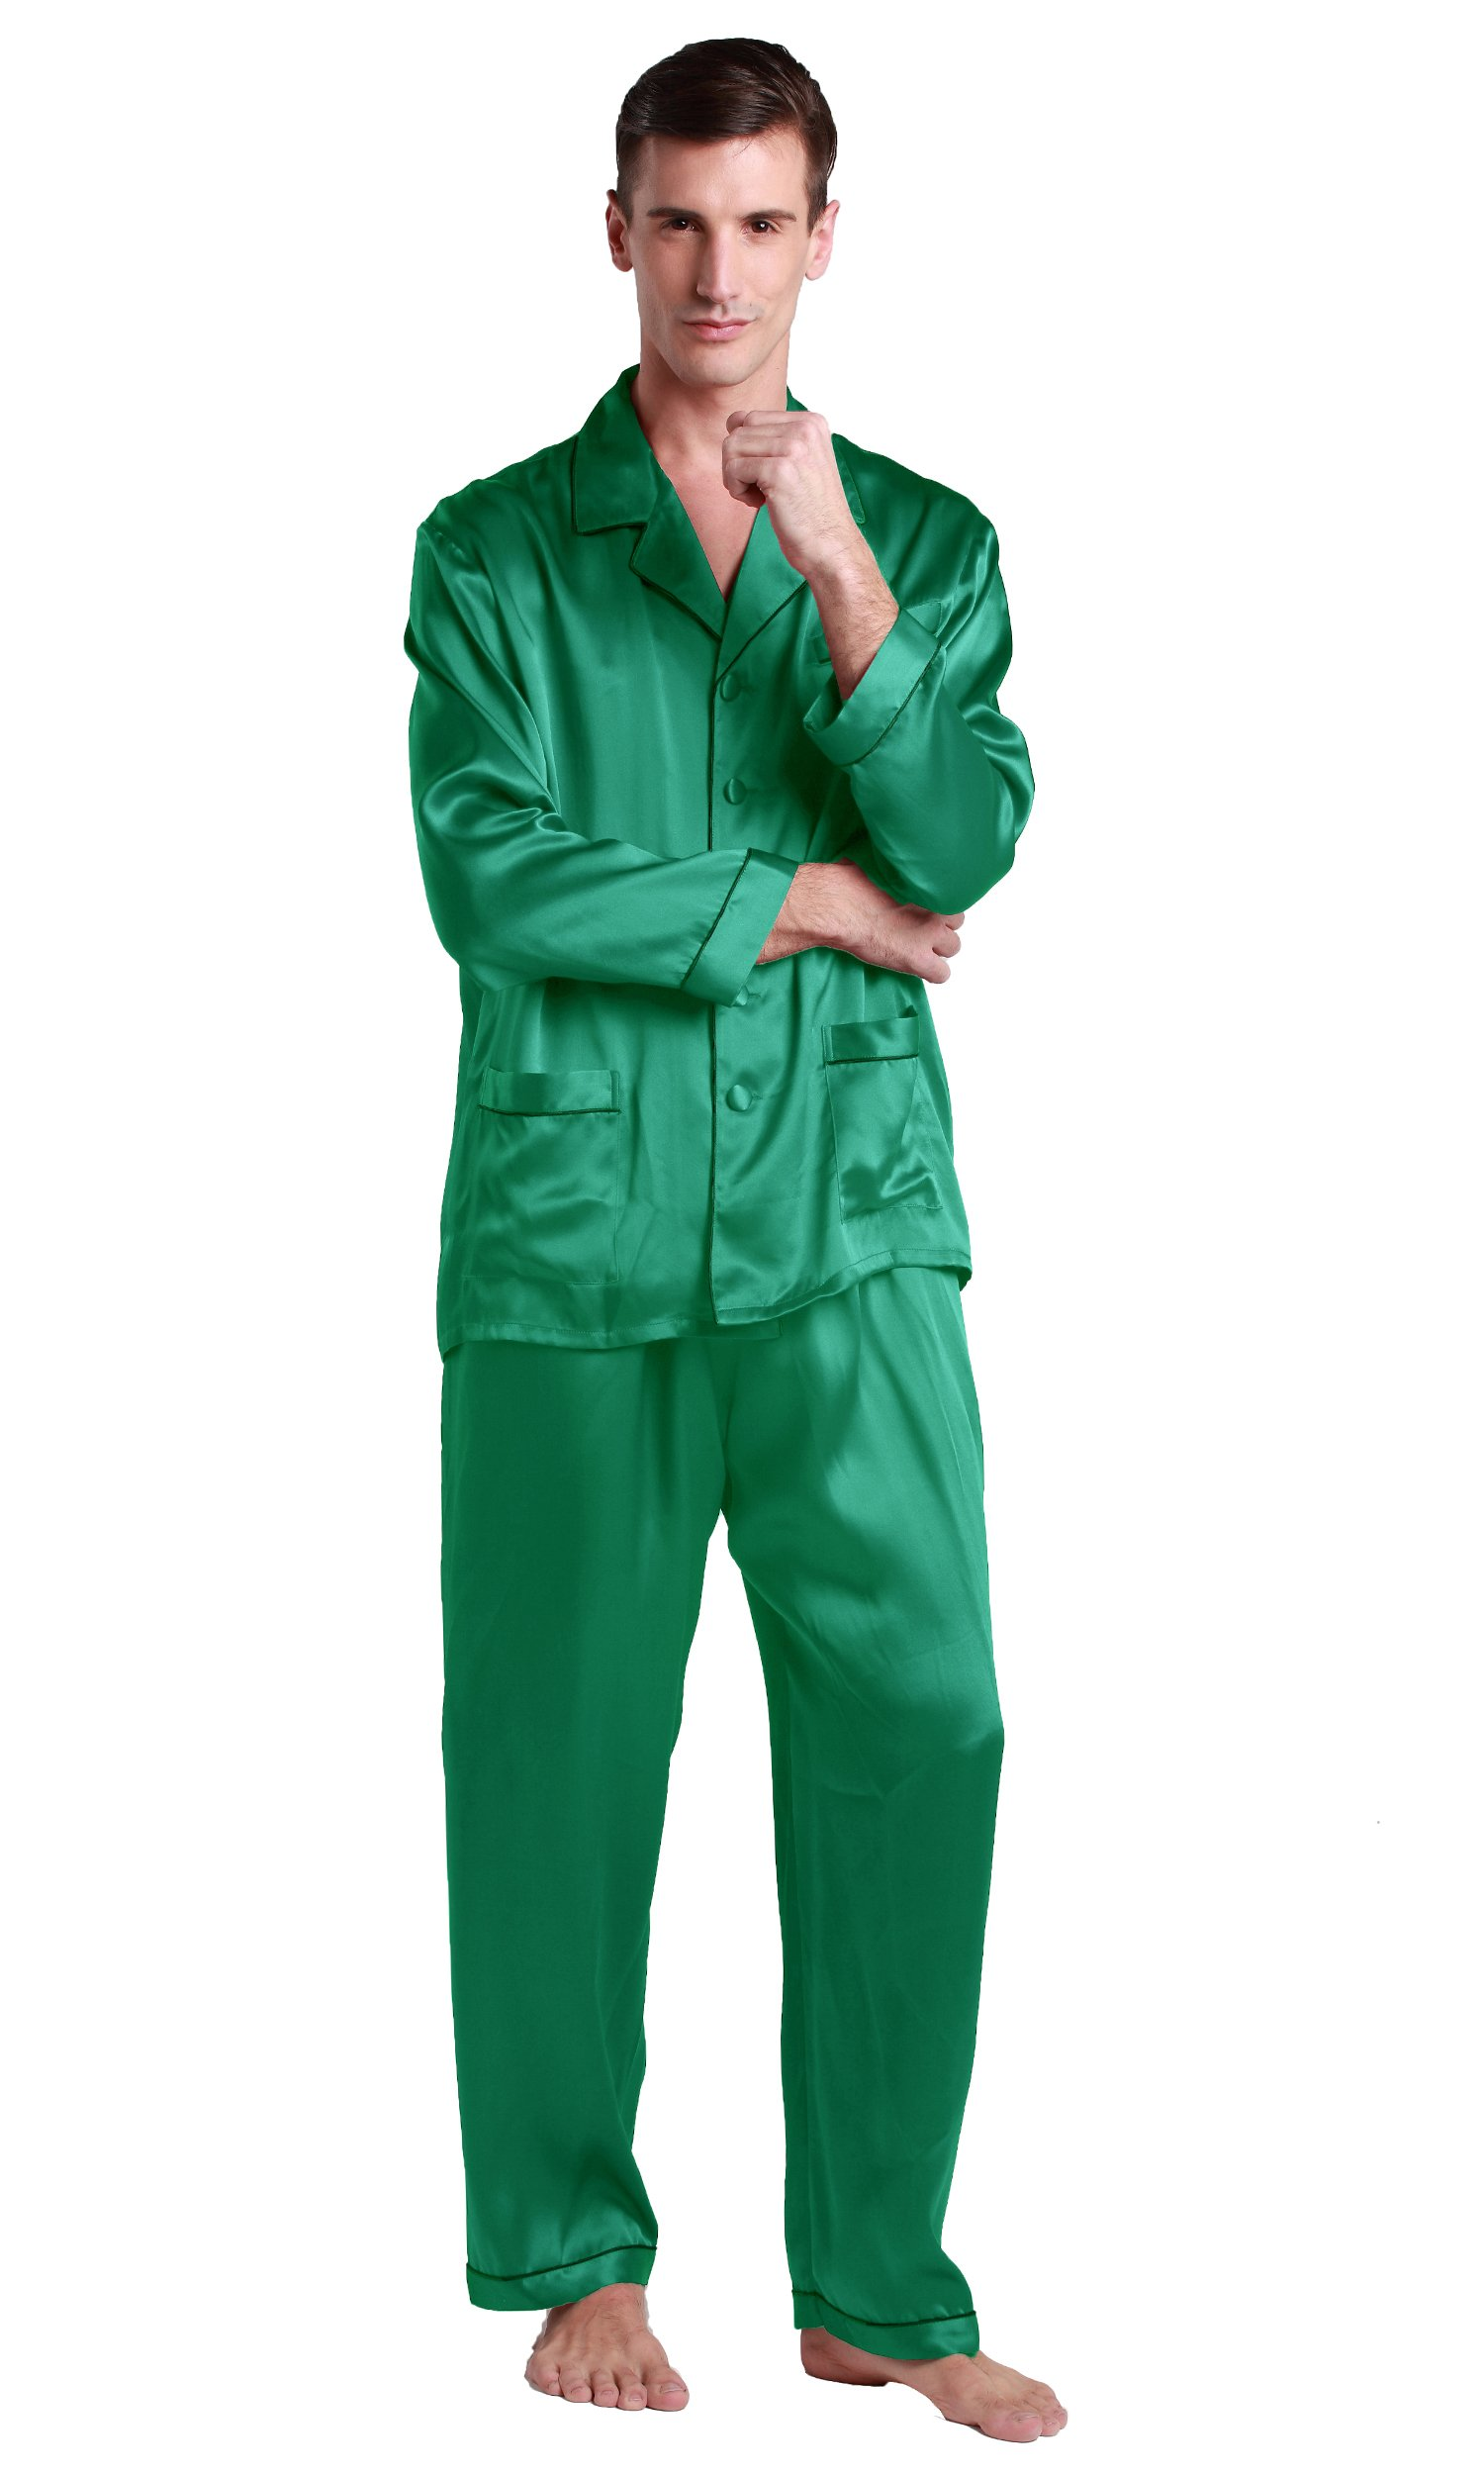 LilySilk Silk Pajamas Set for Men Summer 22 momme Sleep Loungewear Luxury Soft Sleepwear Green Jade X-Small